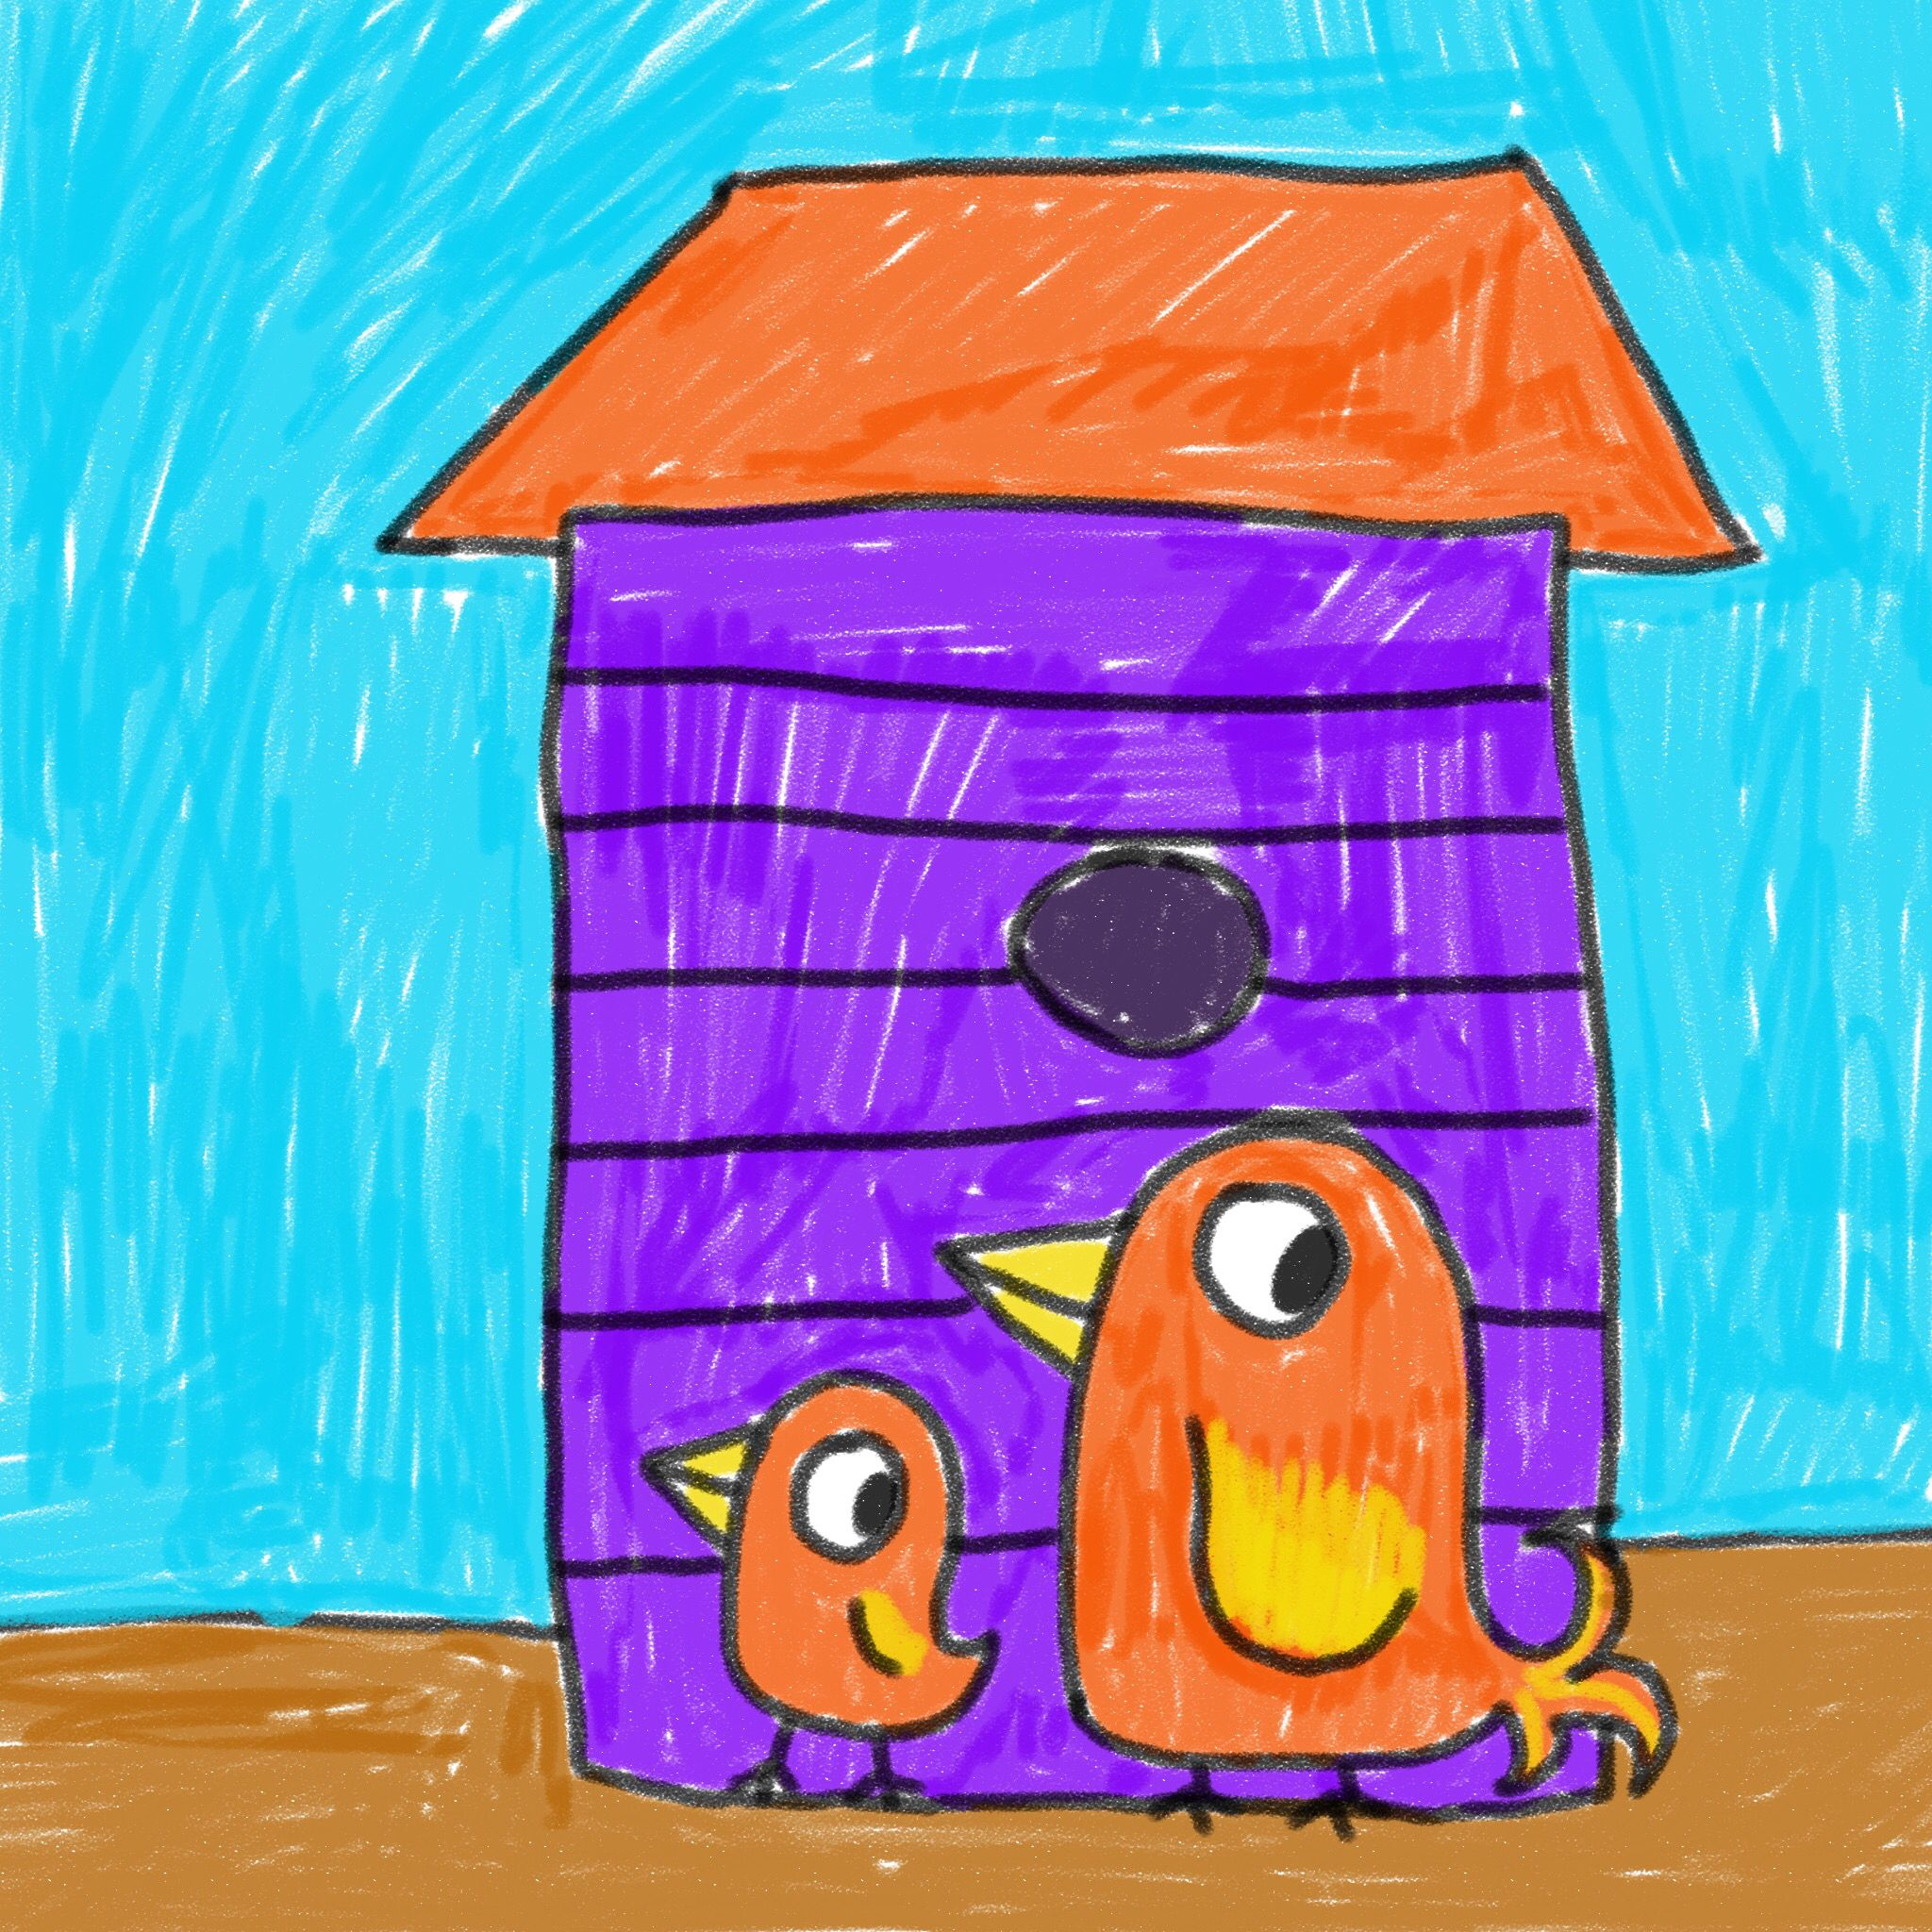 10 Best Quick Art Projects For Kindergarten Images On All